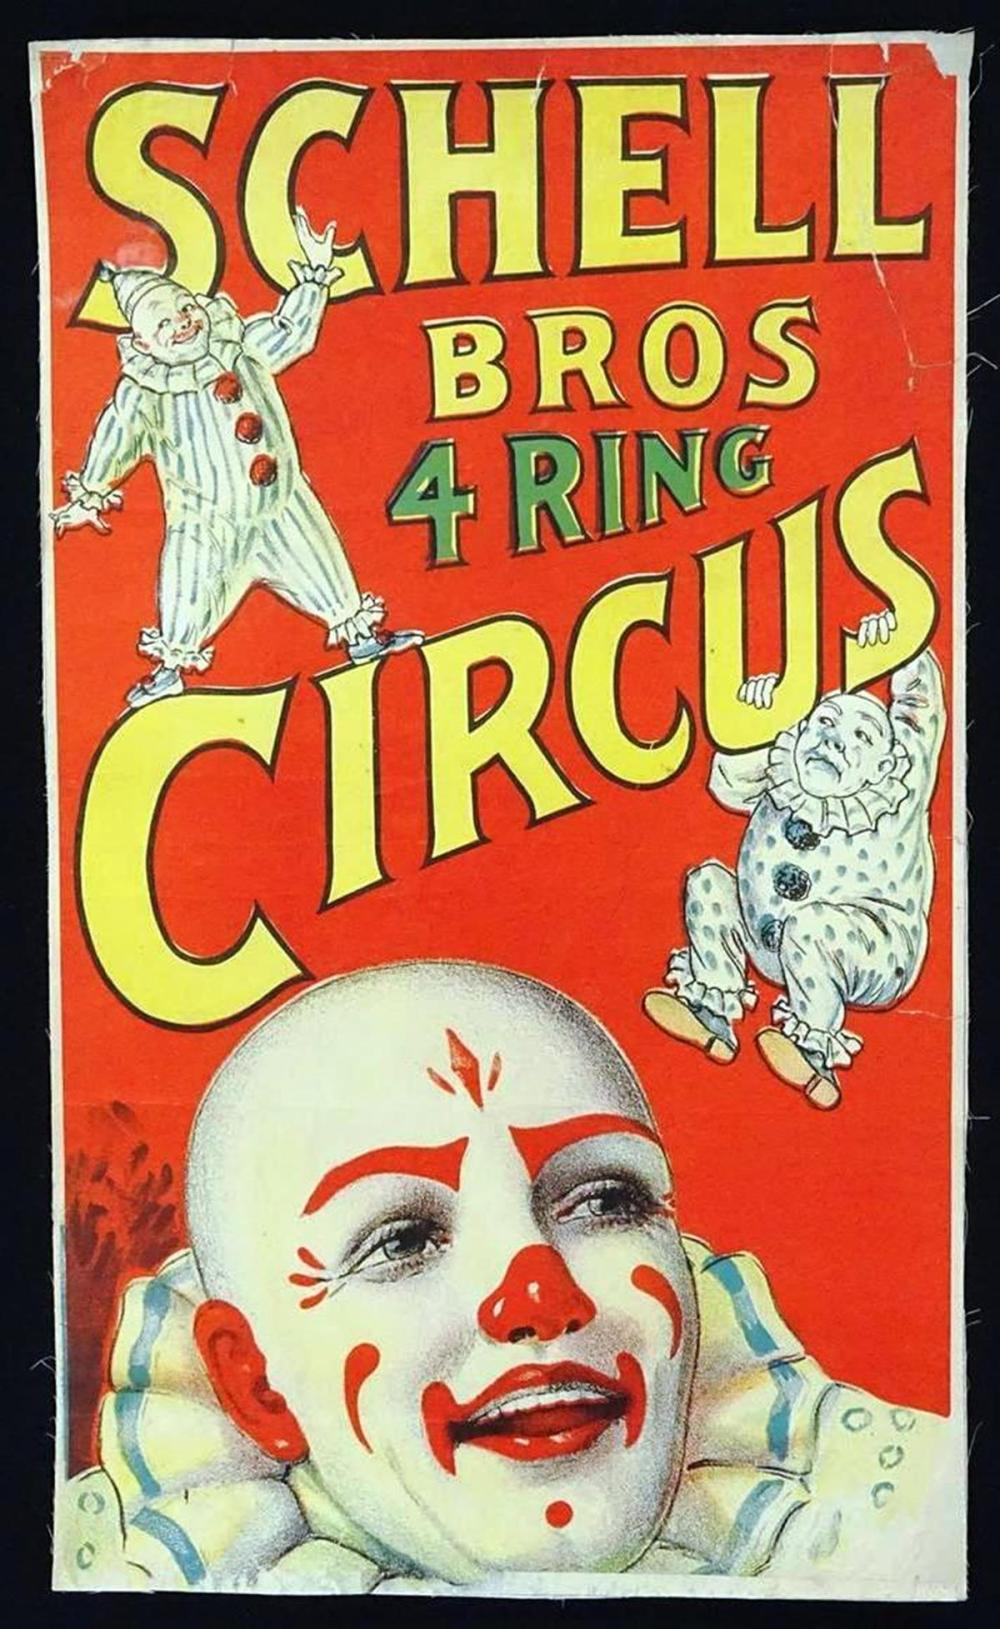 SCHELL BROS. 4-RING CIRCUS POSTER